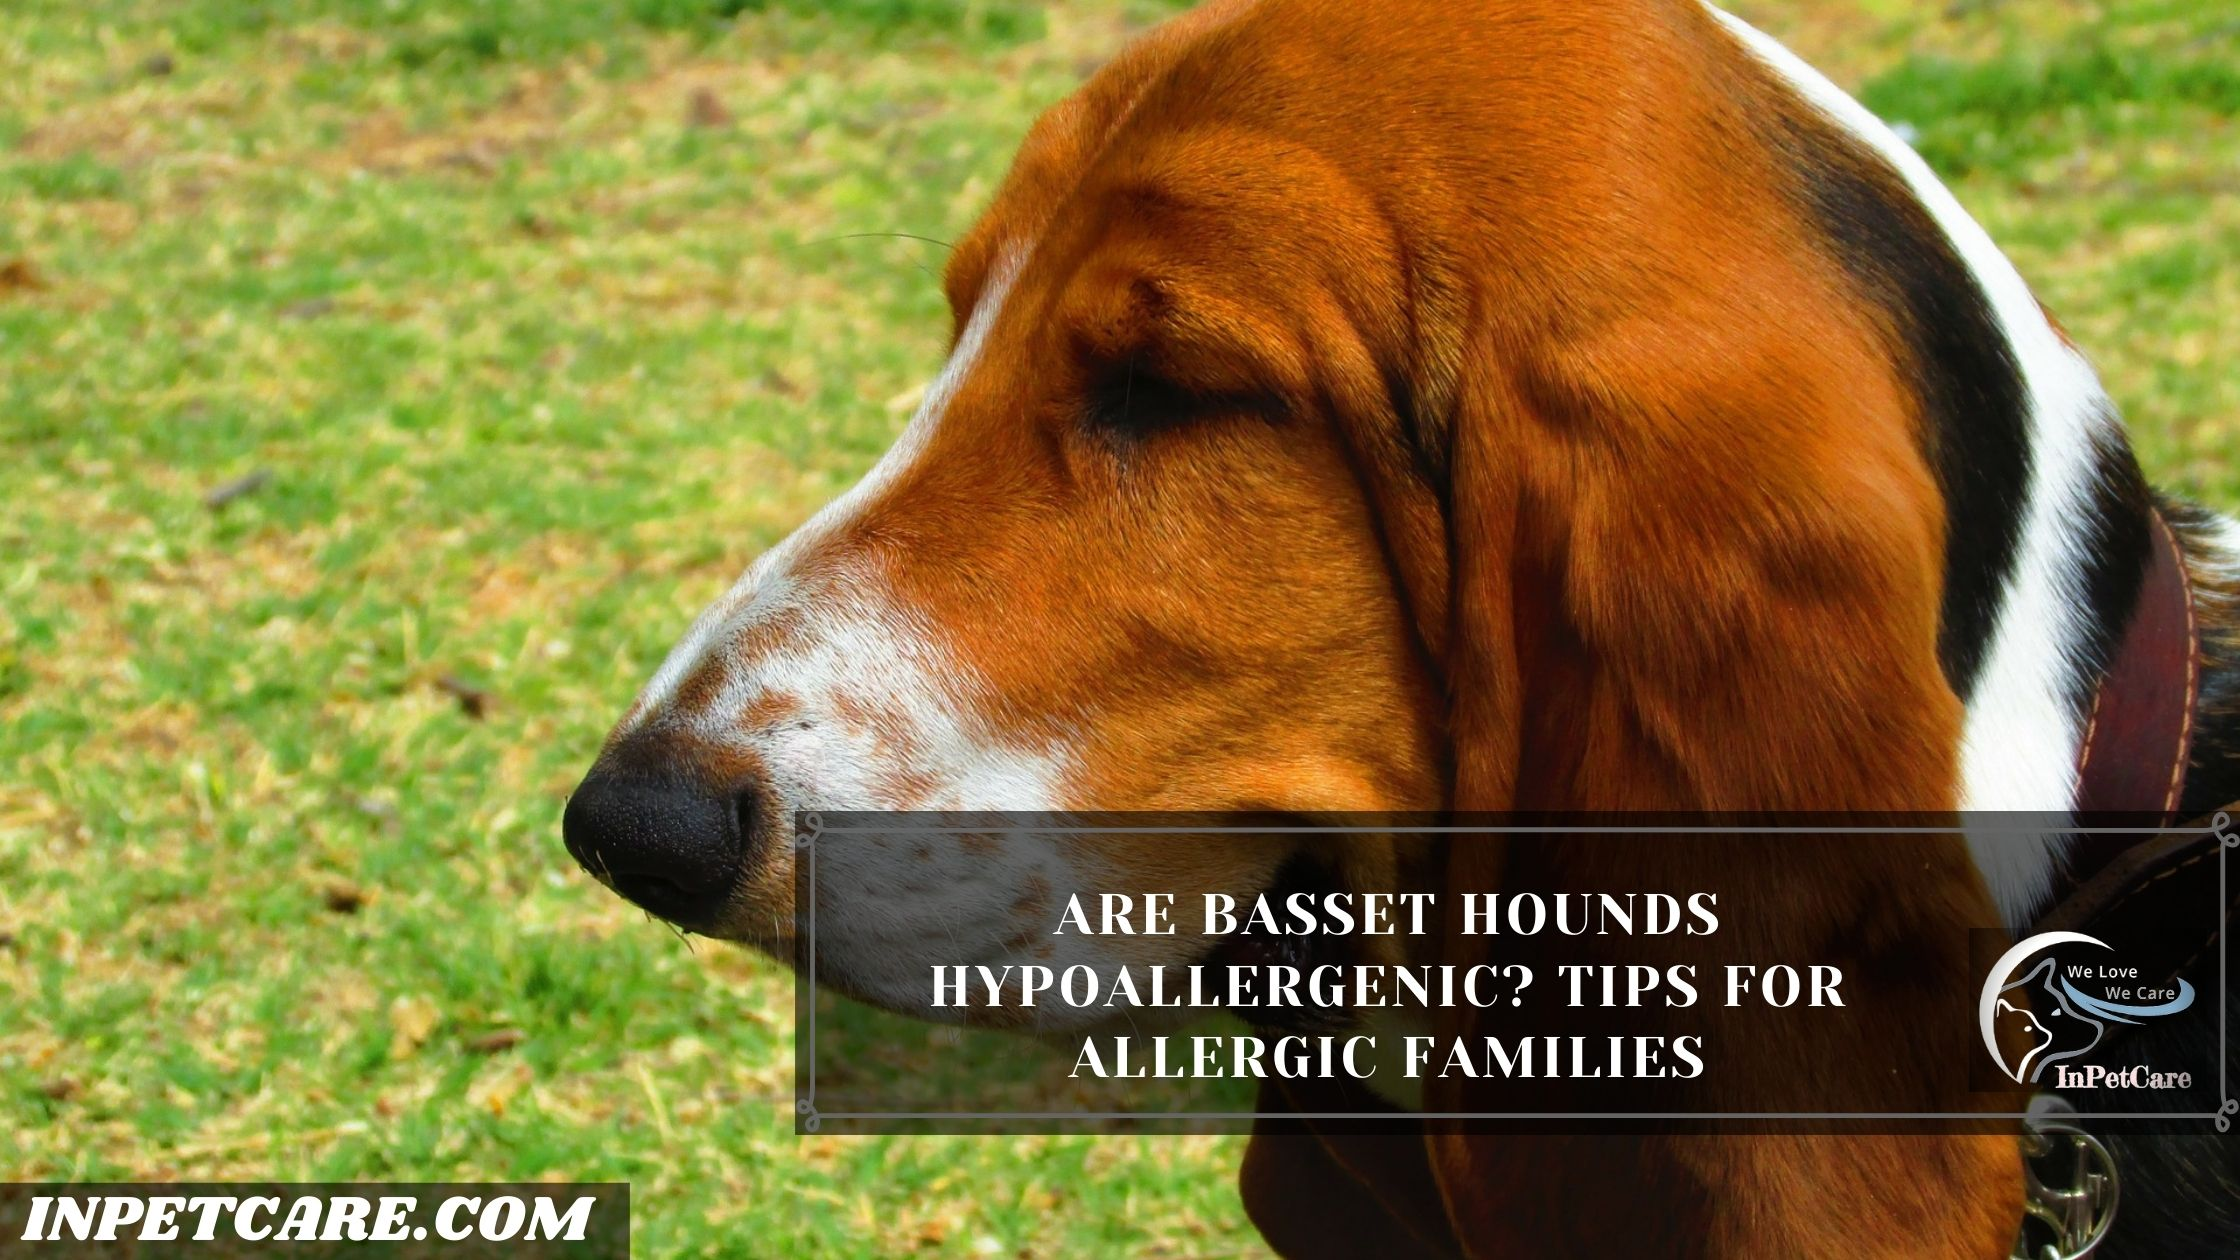 Are Basset Hounds Hypoallergenic? Tips For Allergic Families